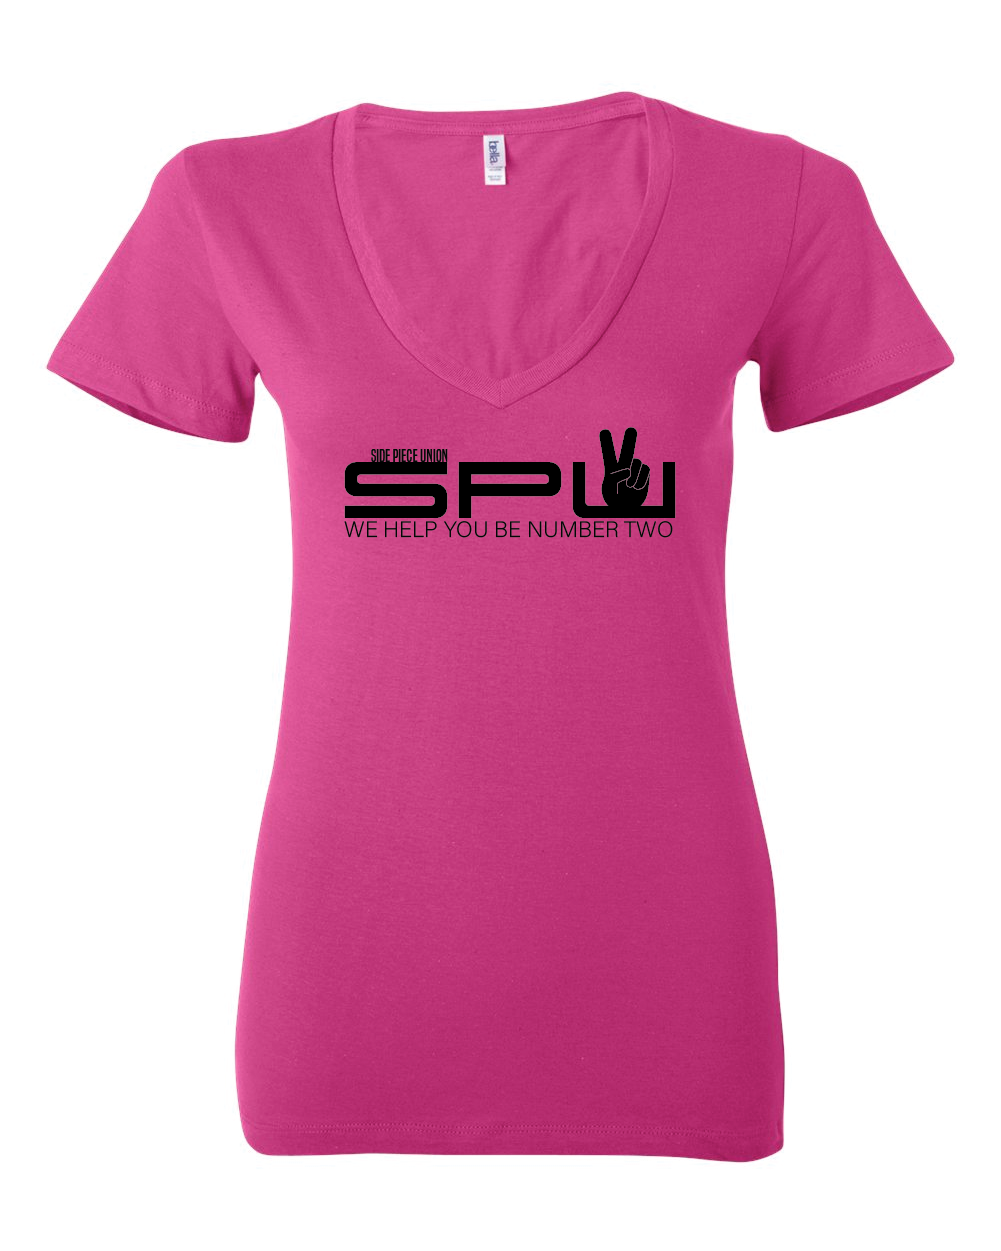 Side Piece Union - V-Neck